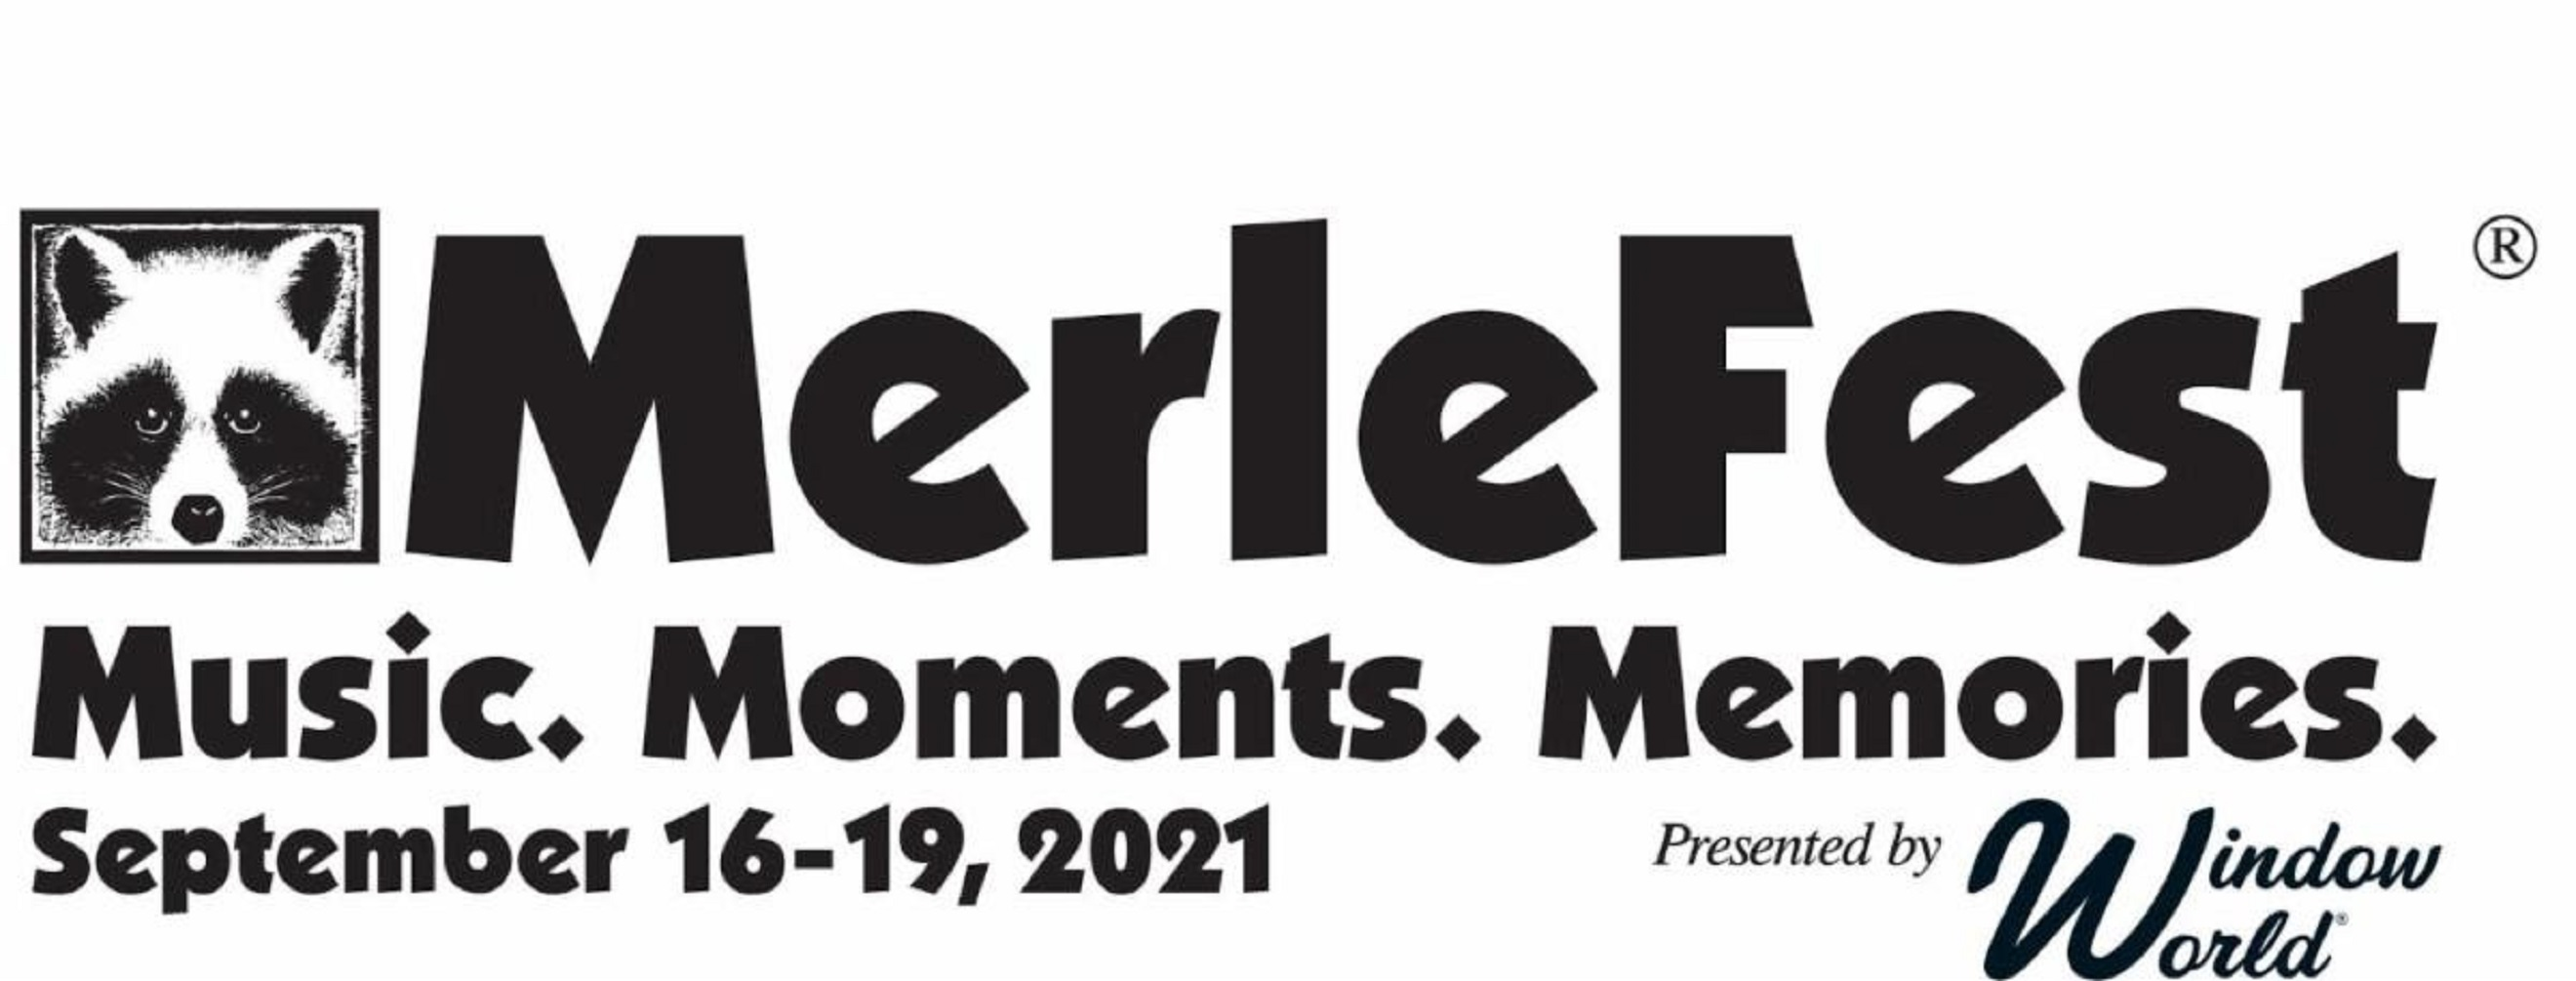 MerleFest announces 2021 festival Sept. 16-19